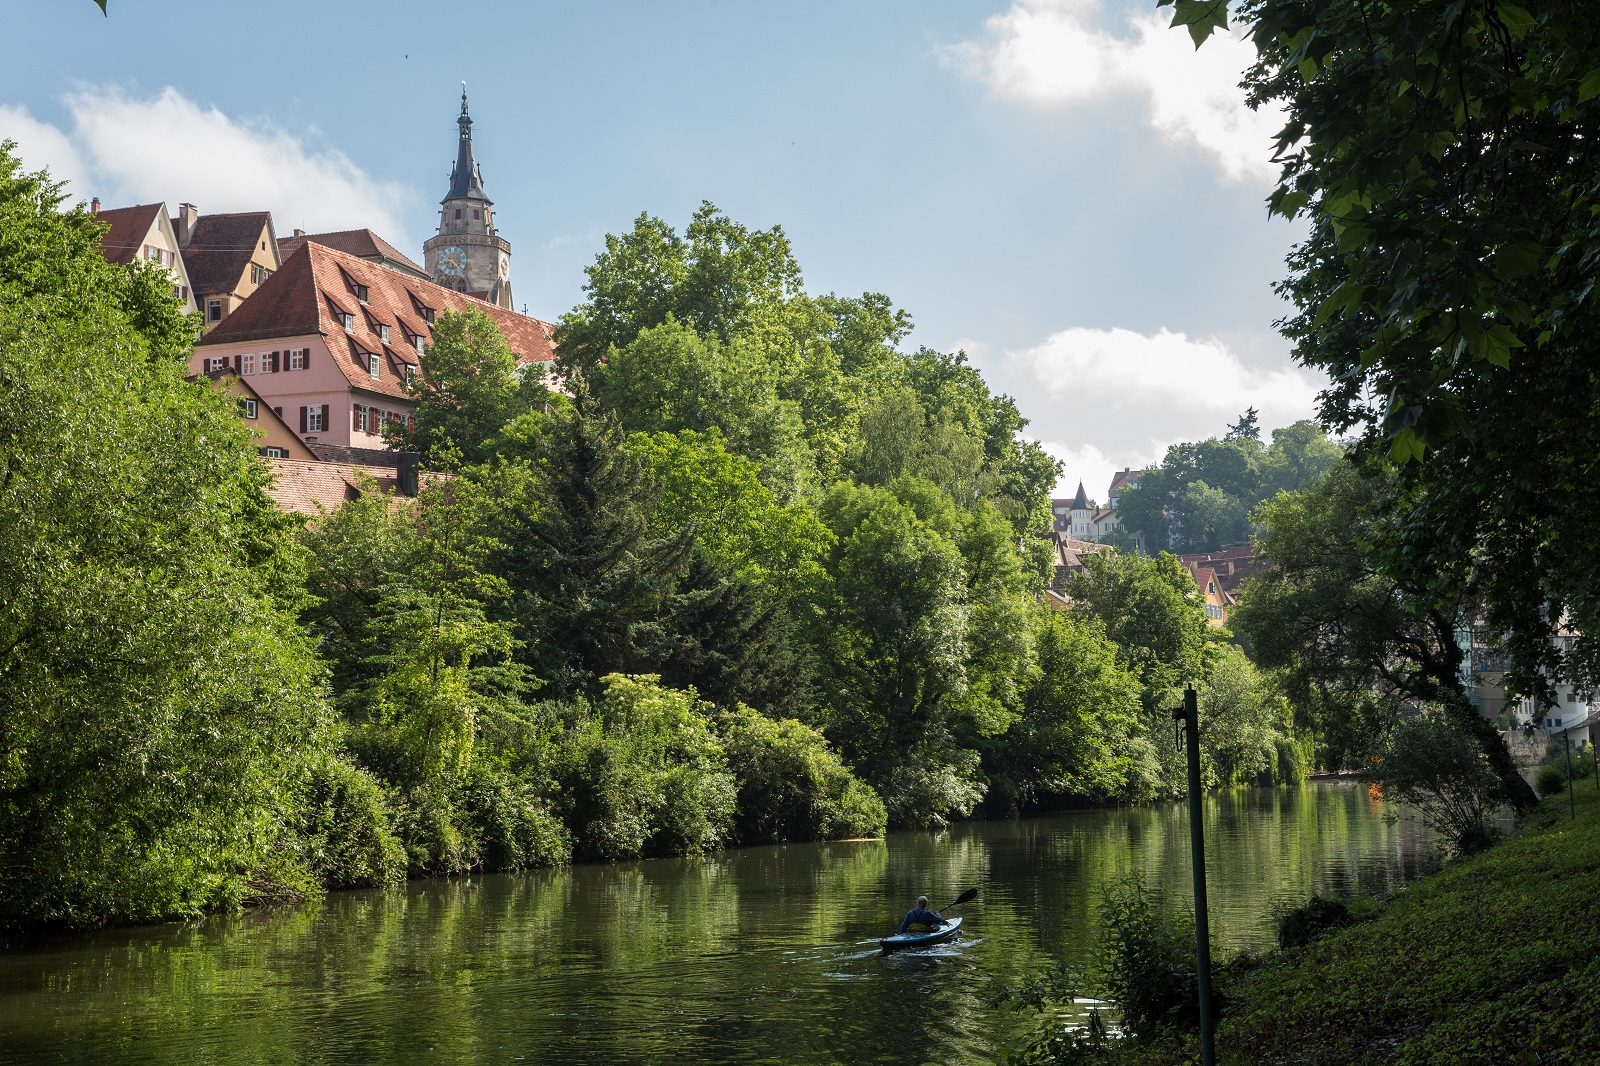 In the foreground the Neckar, the bank with trees, and in the background the old town and the Stiftskirche church